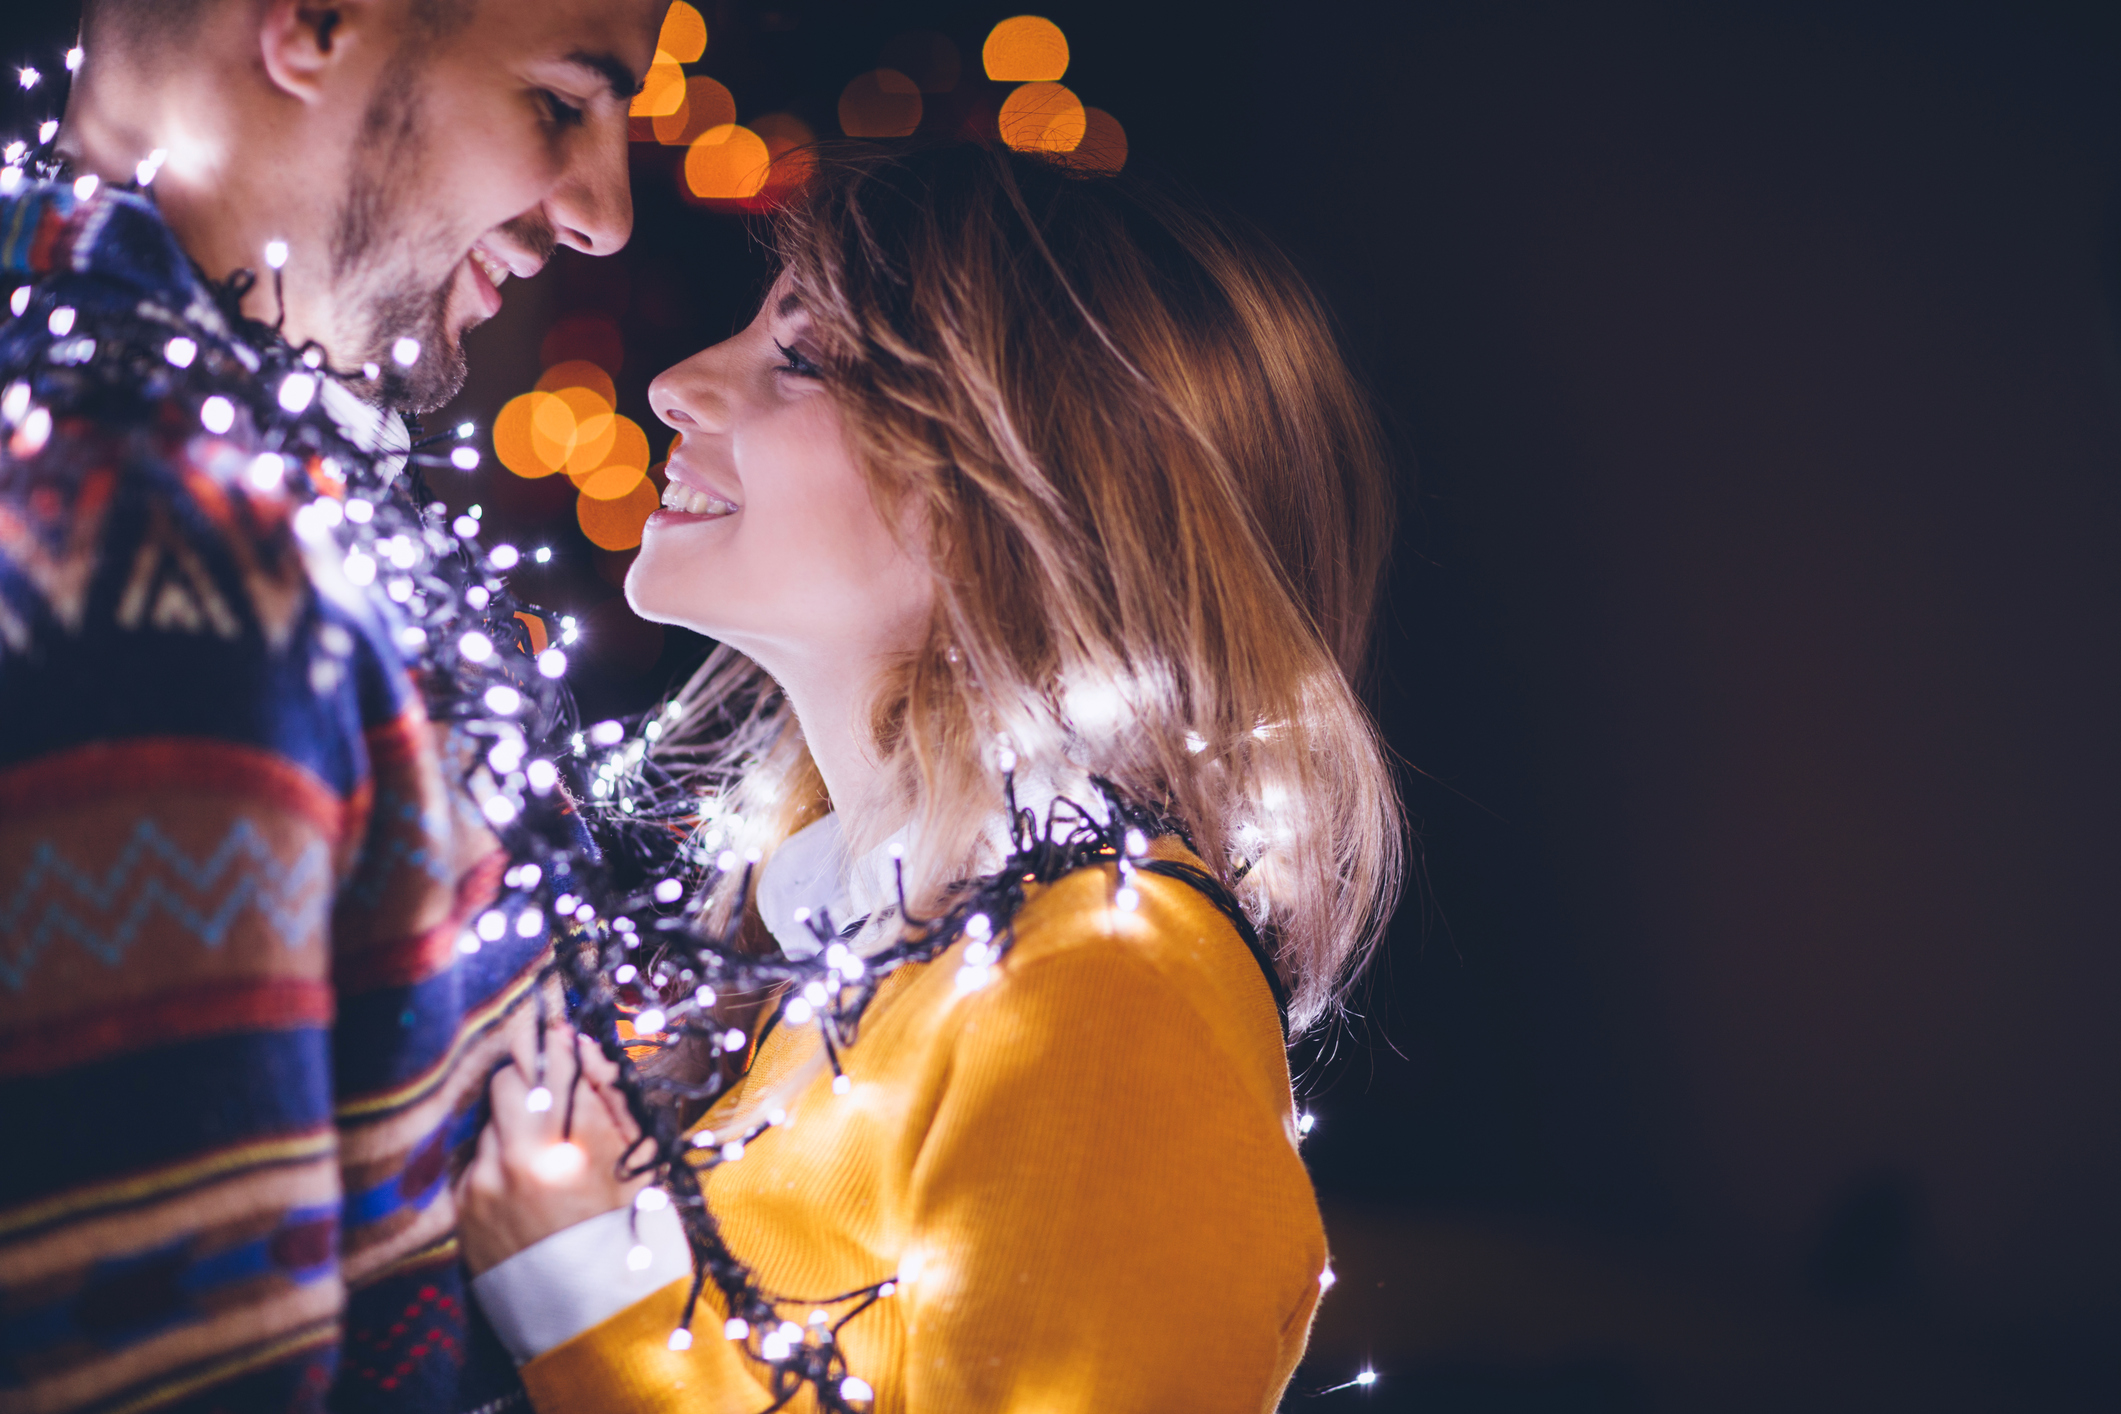 Couple embracing wrapped in Christmas lights